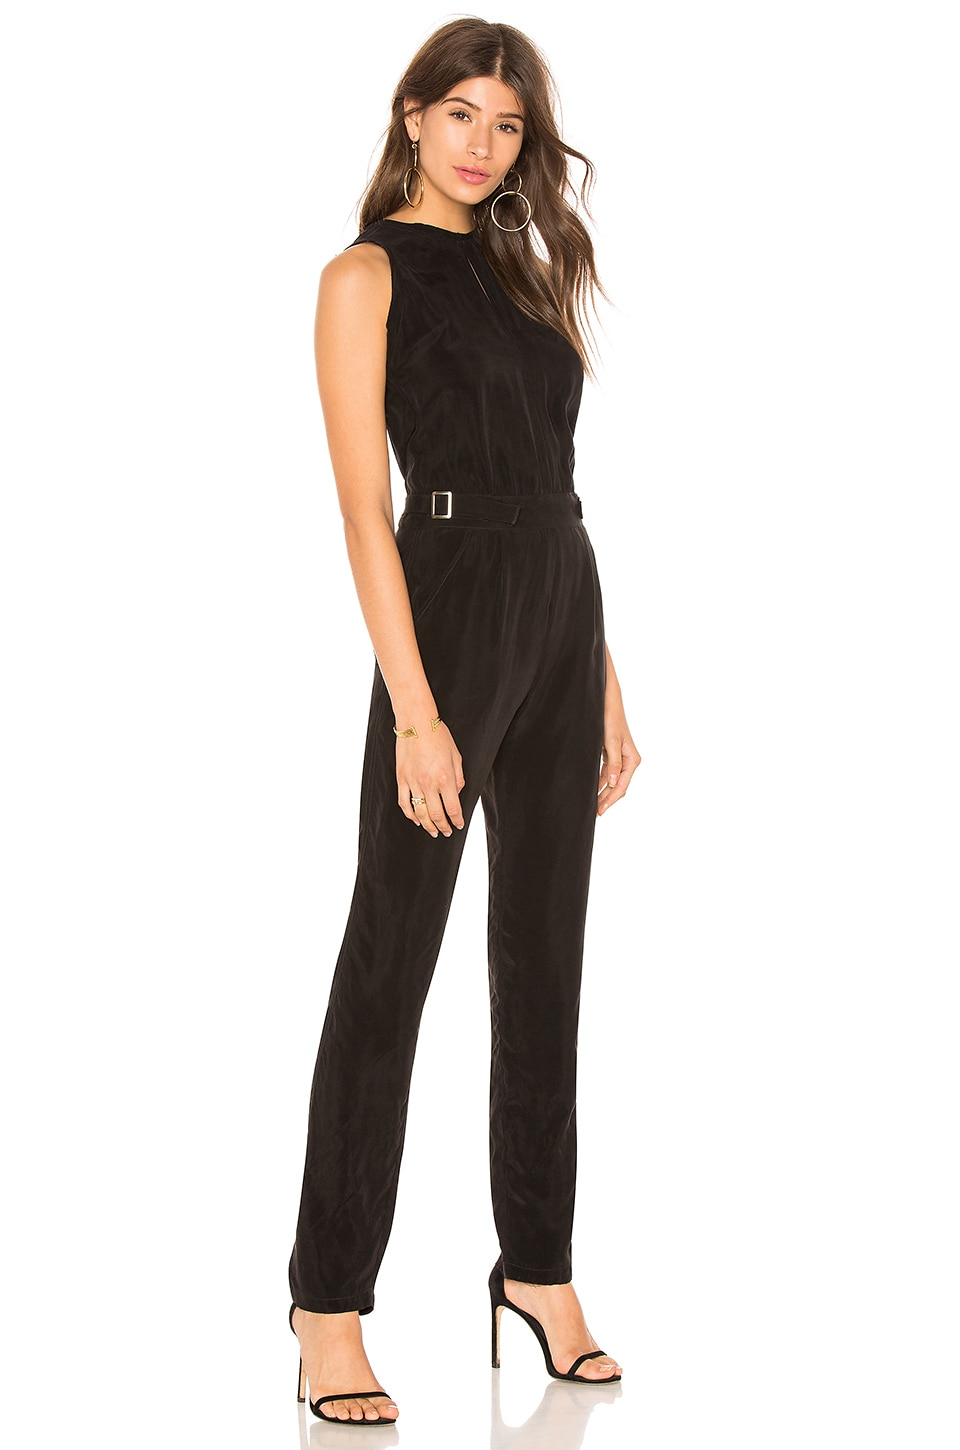 CALVIN RUCKER I Melt With You Jumpsuit in Black